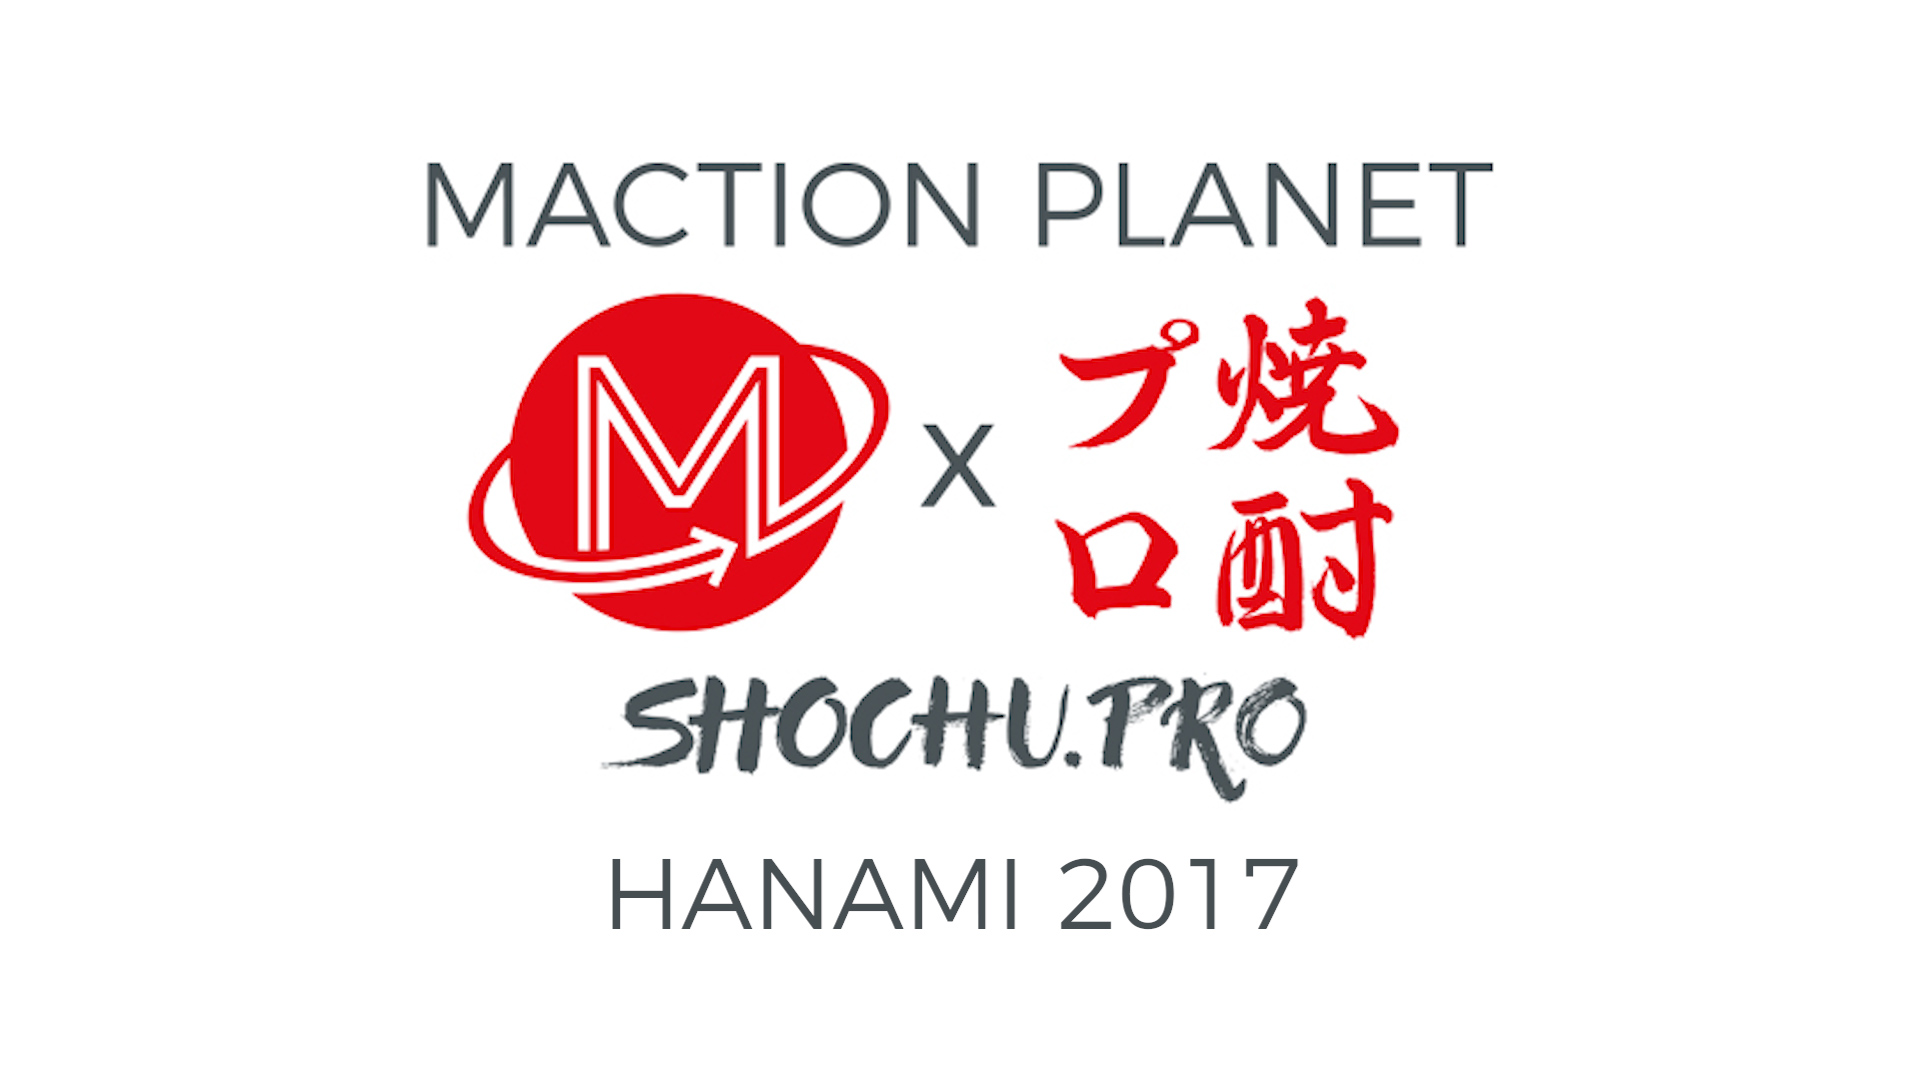 Maction Planet x Shochu.Pro Hanami 2017: The Movie